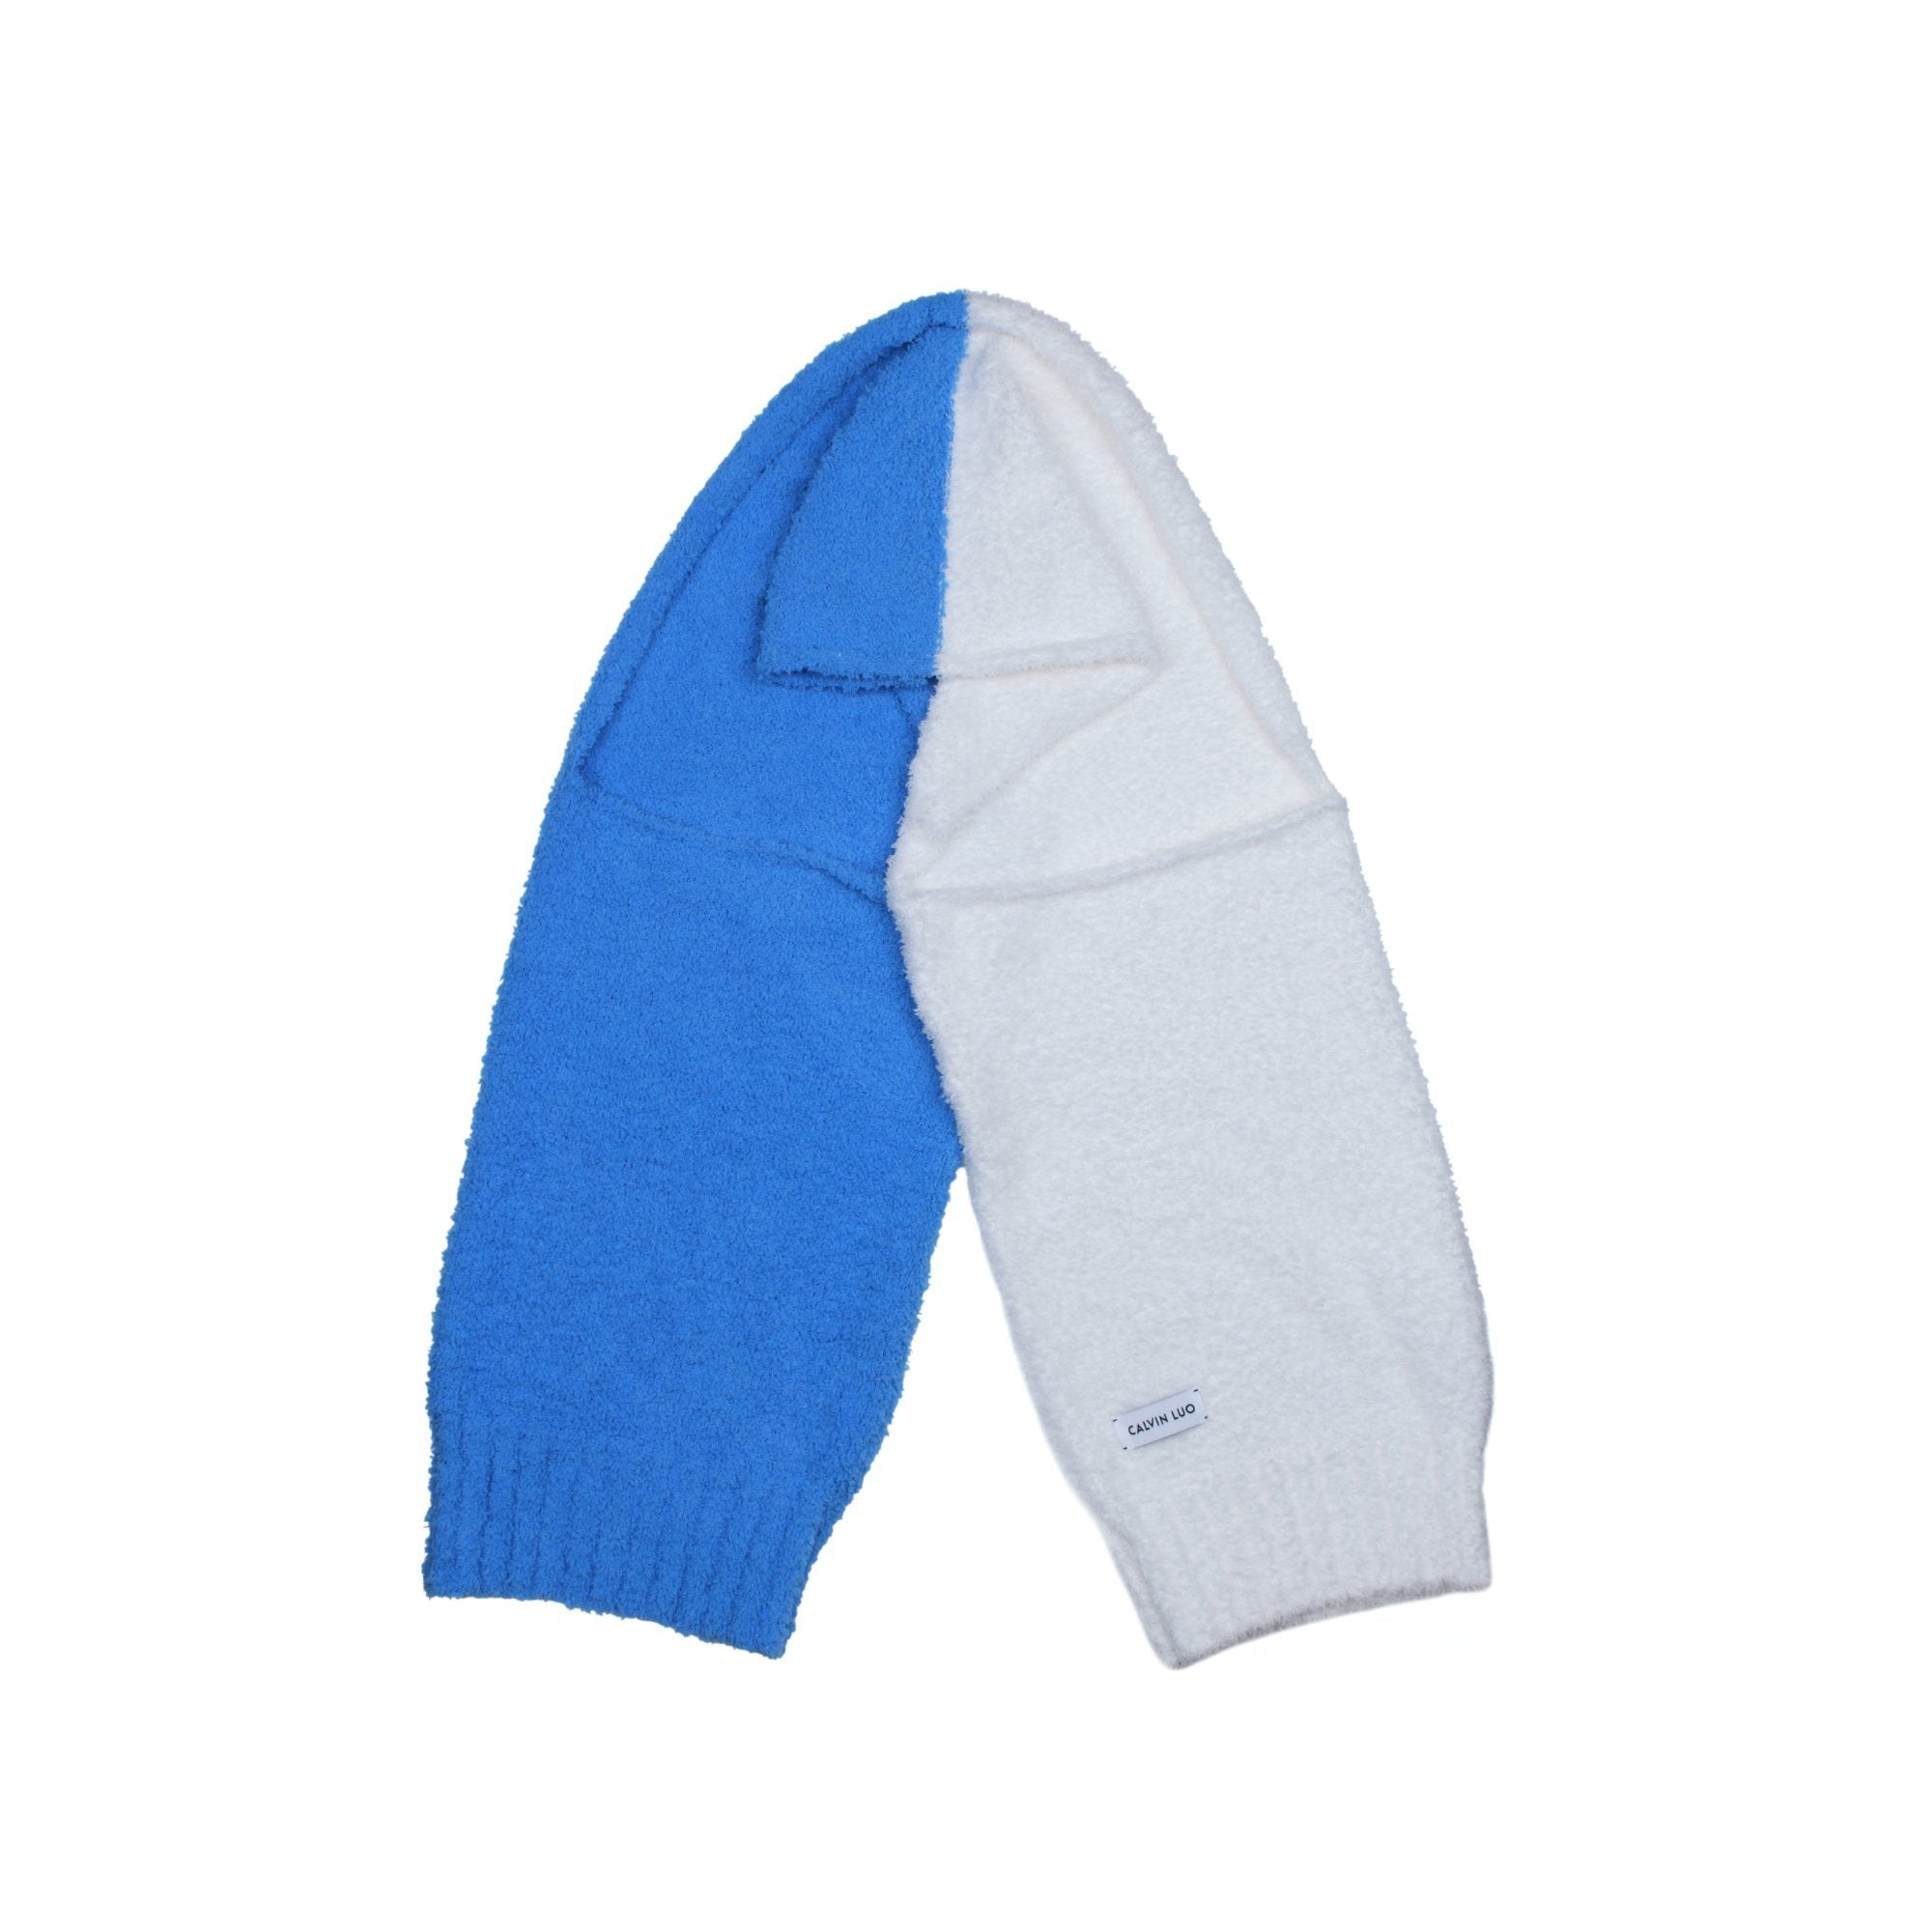 CALVIN LUO Lunar New Year Blue Arm Sleeve Scarf | MADA IN CHINA